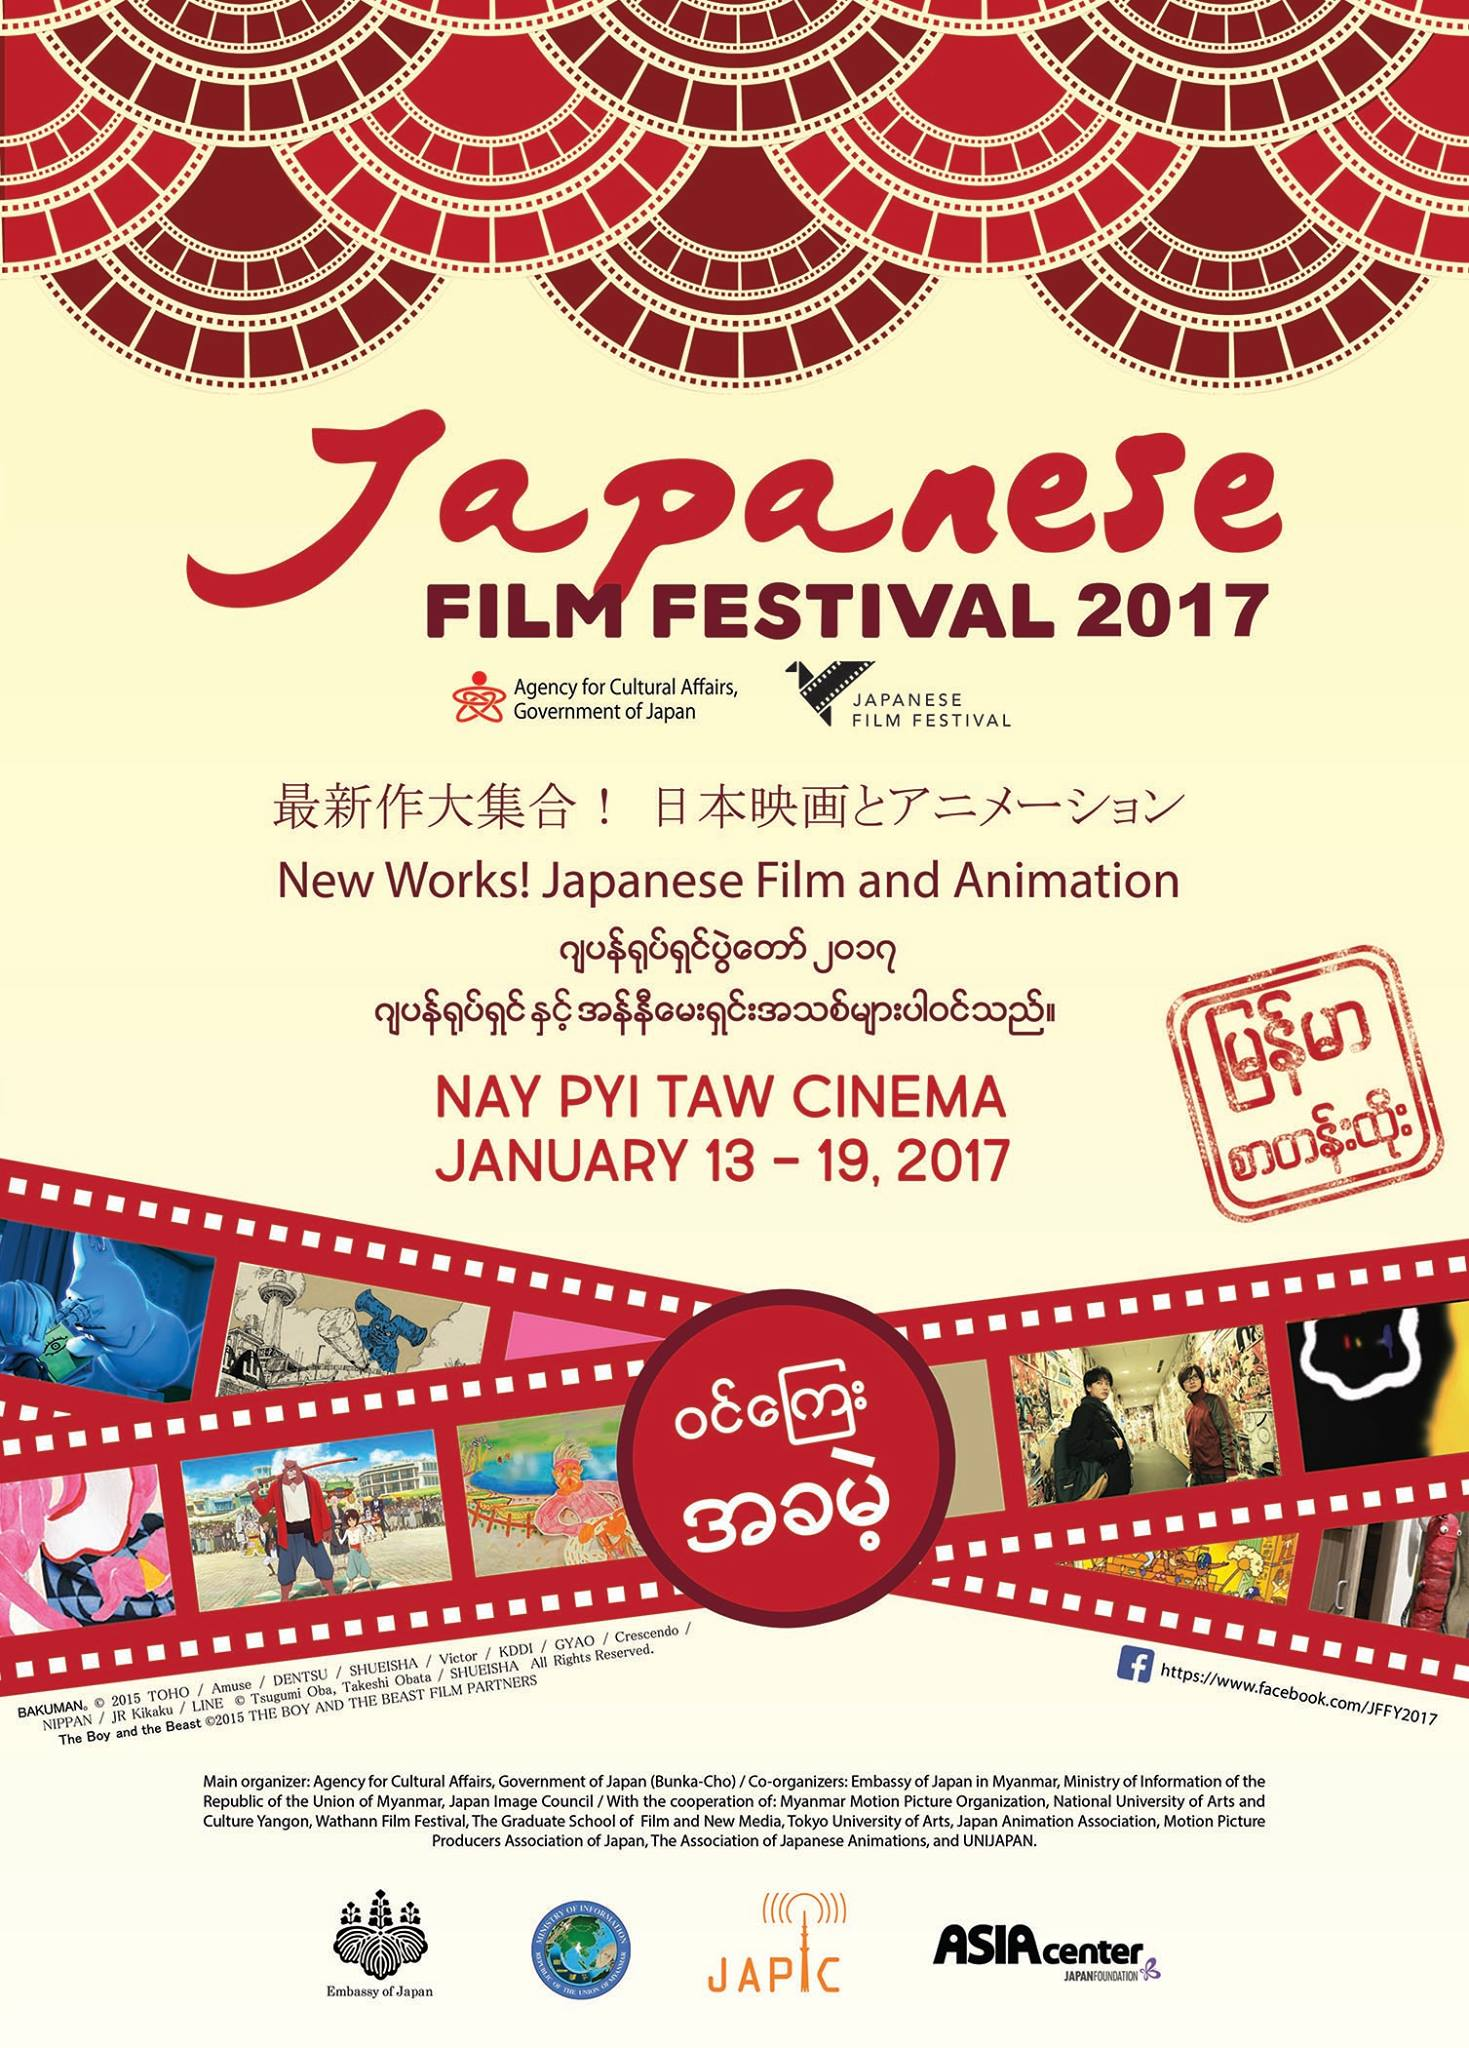 Embassy of japan in myanmar the embassy of japan japanese agency for cultural affairs and japan image council proudly present japanese film festival in yangon from 13th to 19th in stopboris Gallery